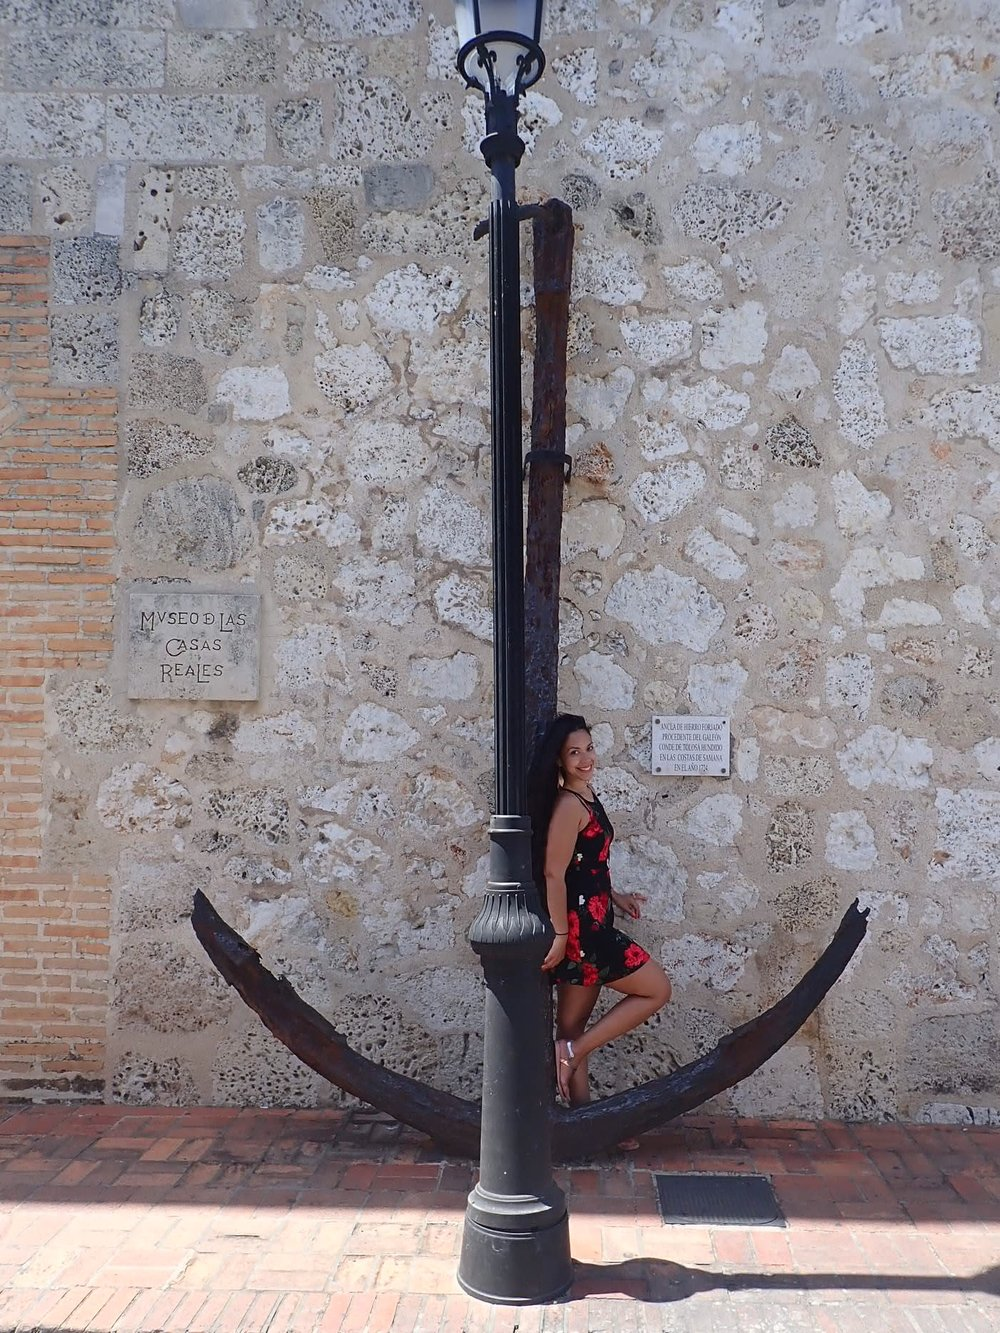 Museo D Las Casas Reales & Anchor from Samana 1724